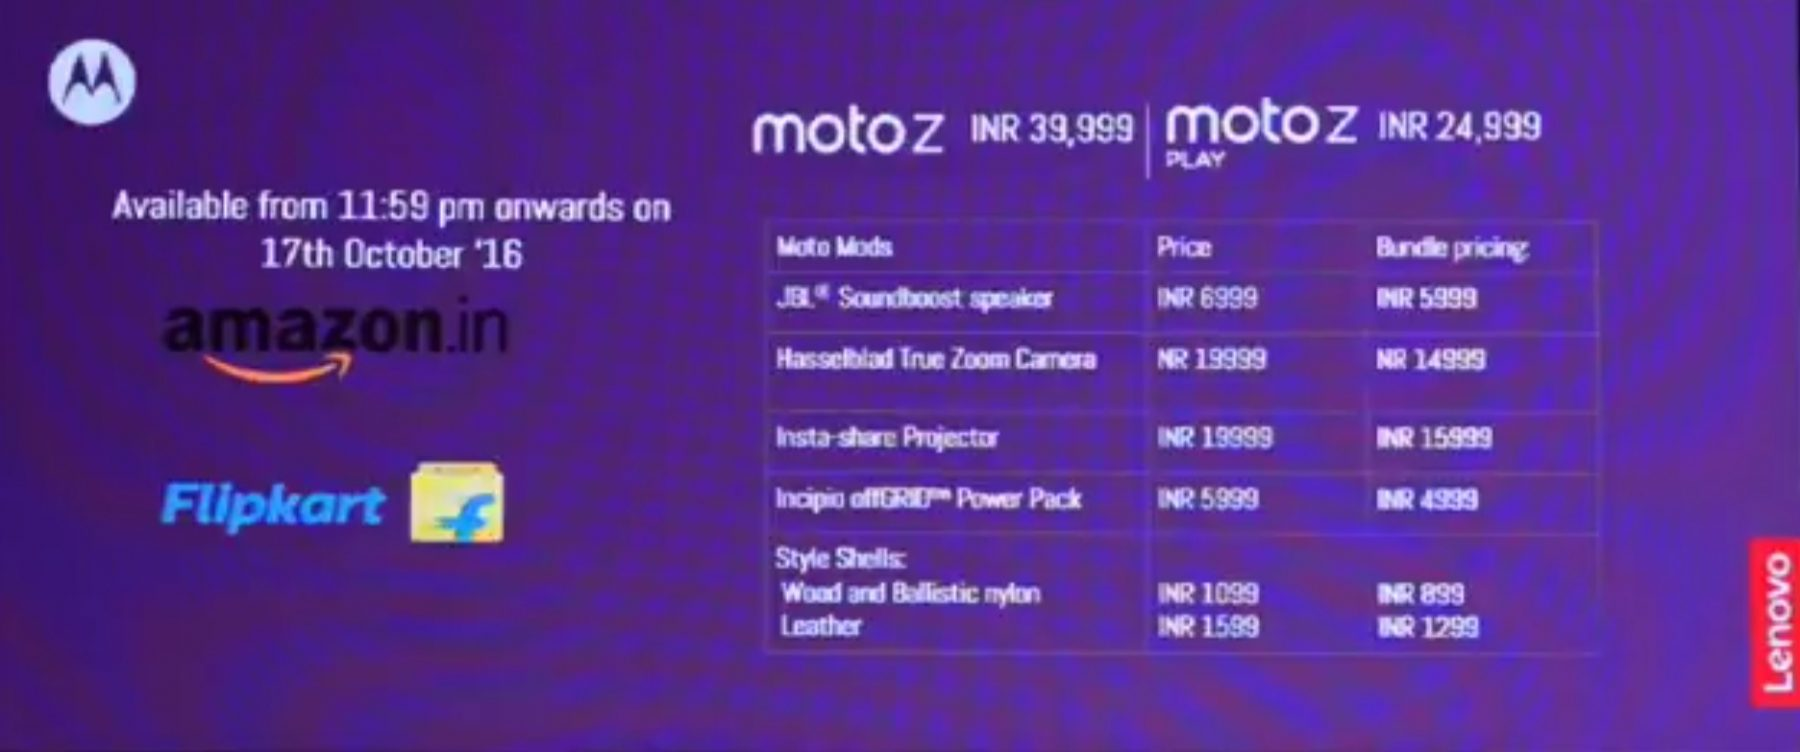 Moto Z, Moto Z Play India Launch - Price, Specs, Features, and Everything Else You Need to Know